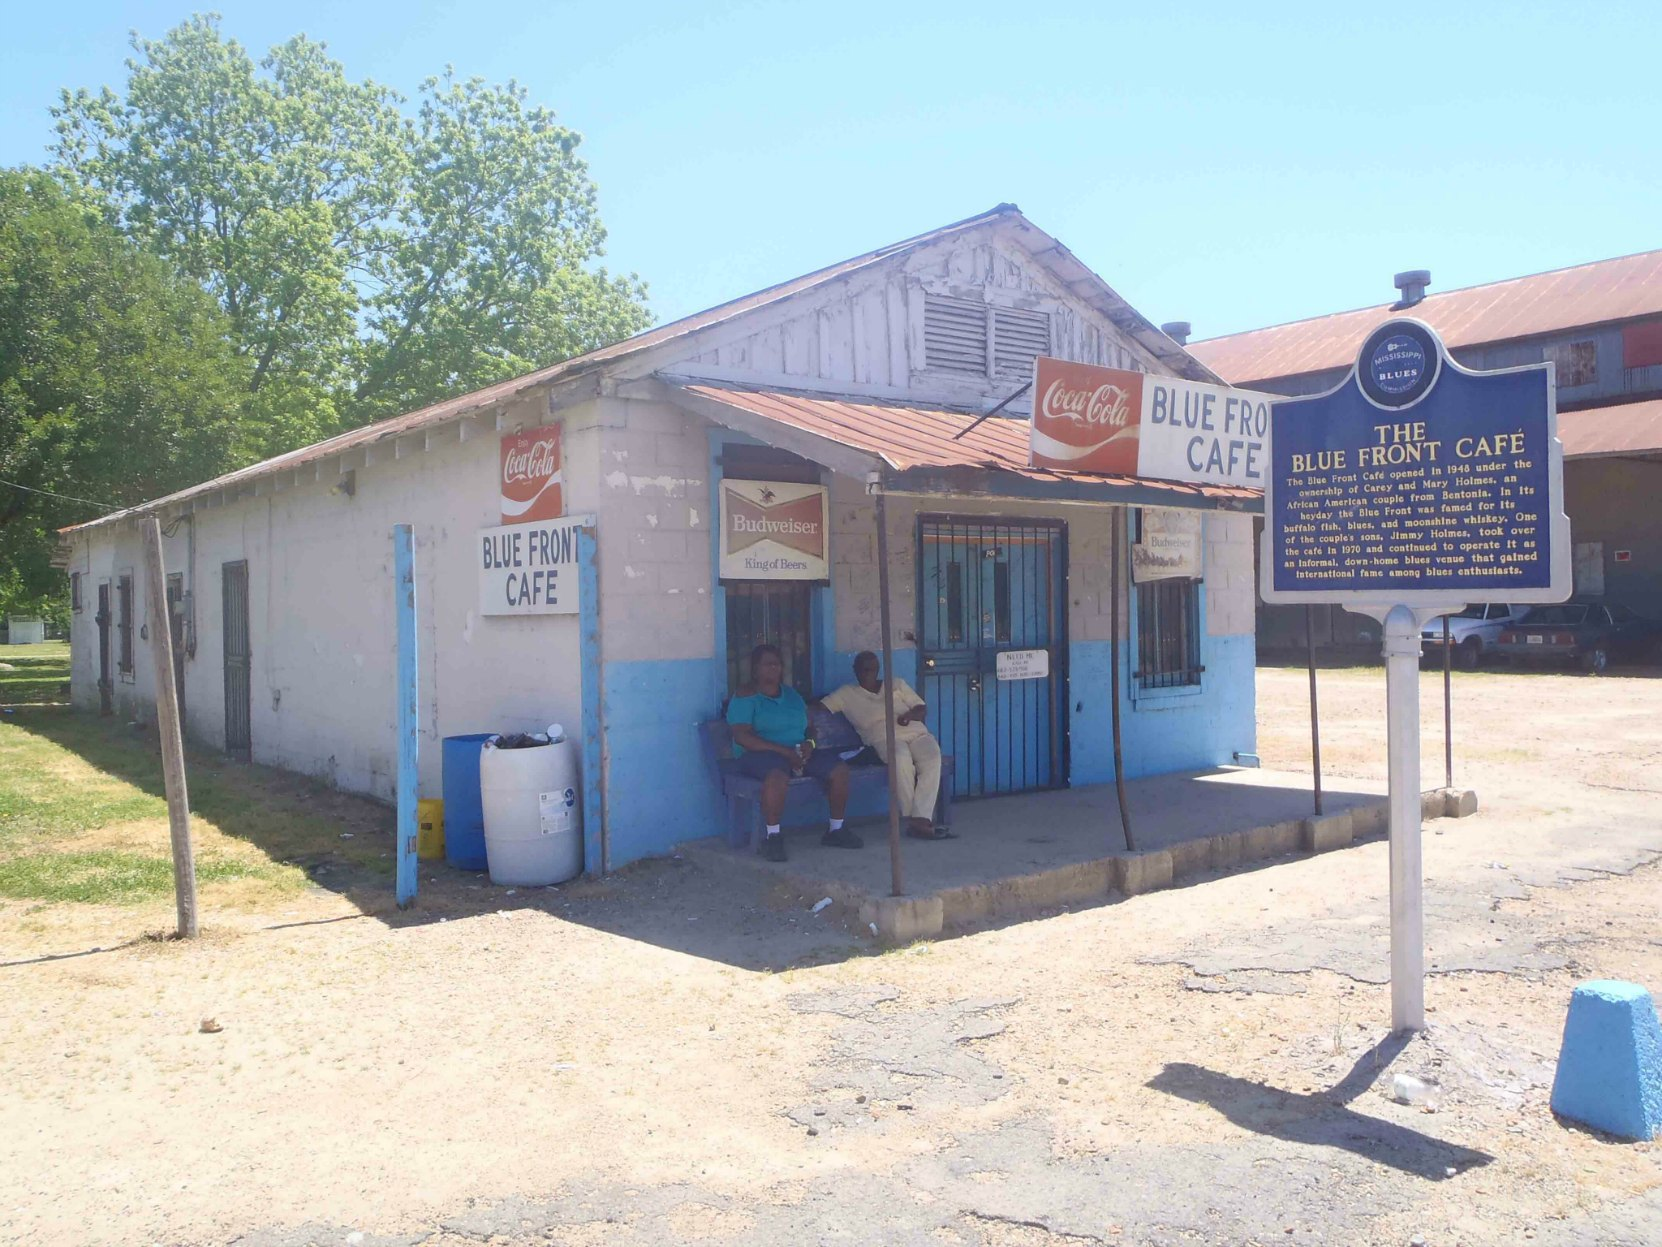 The Blue Front Cafe in Bentonia, Yazoo County, Mississippi. Operated by Jimmy Holmes.